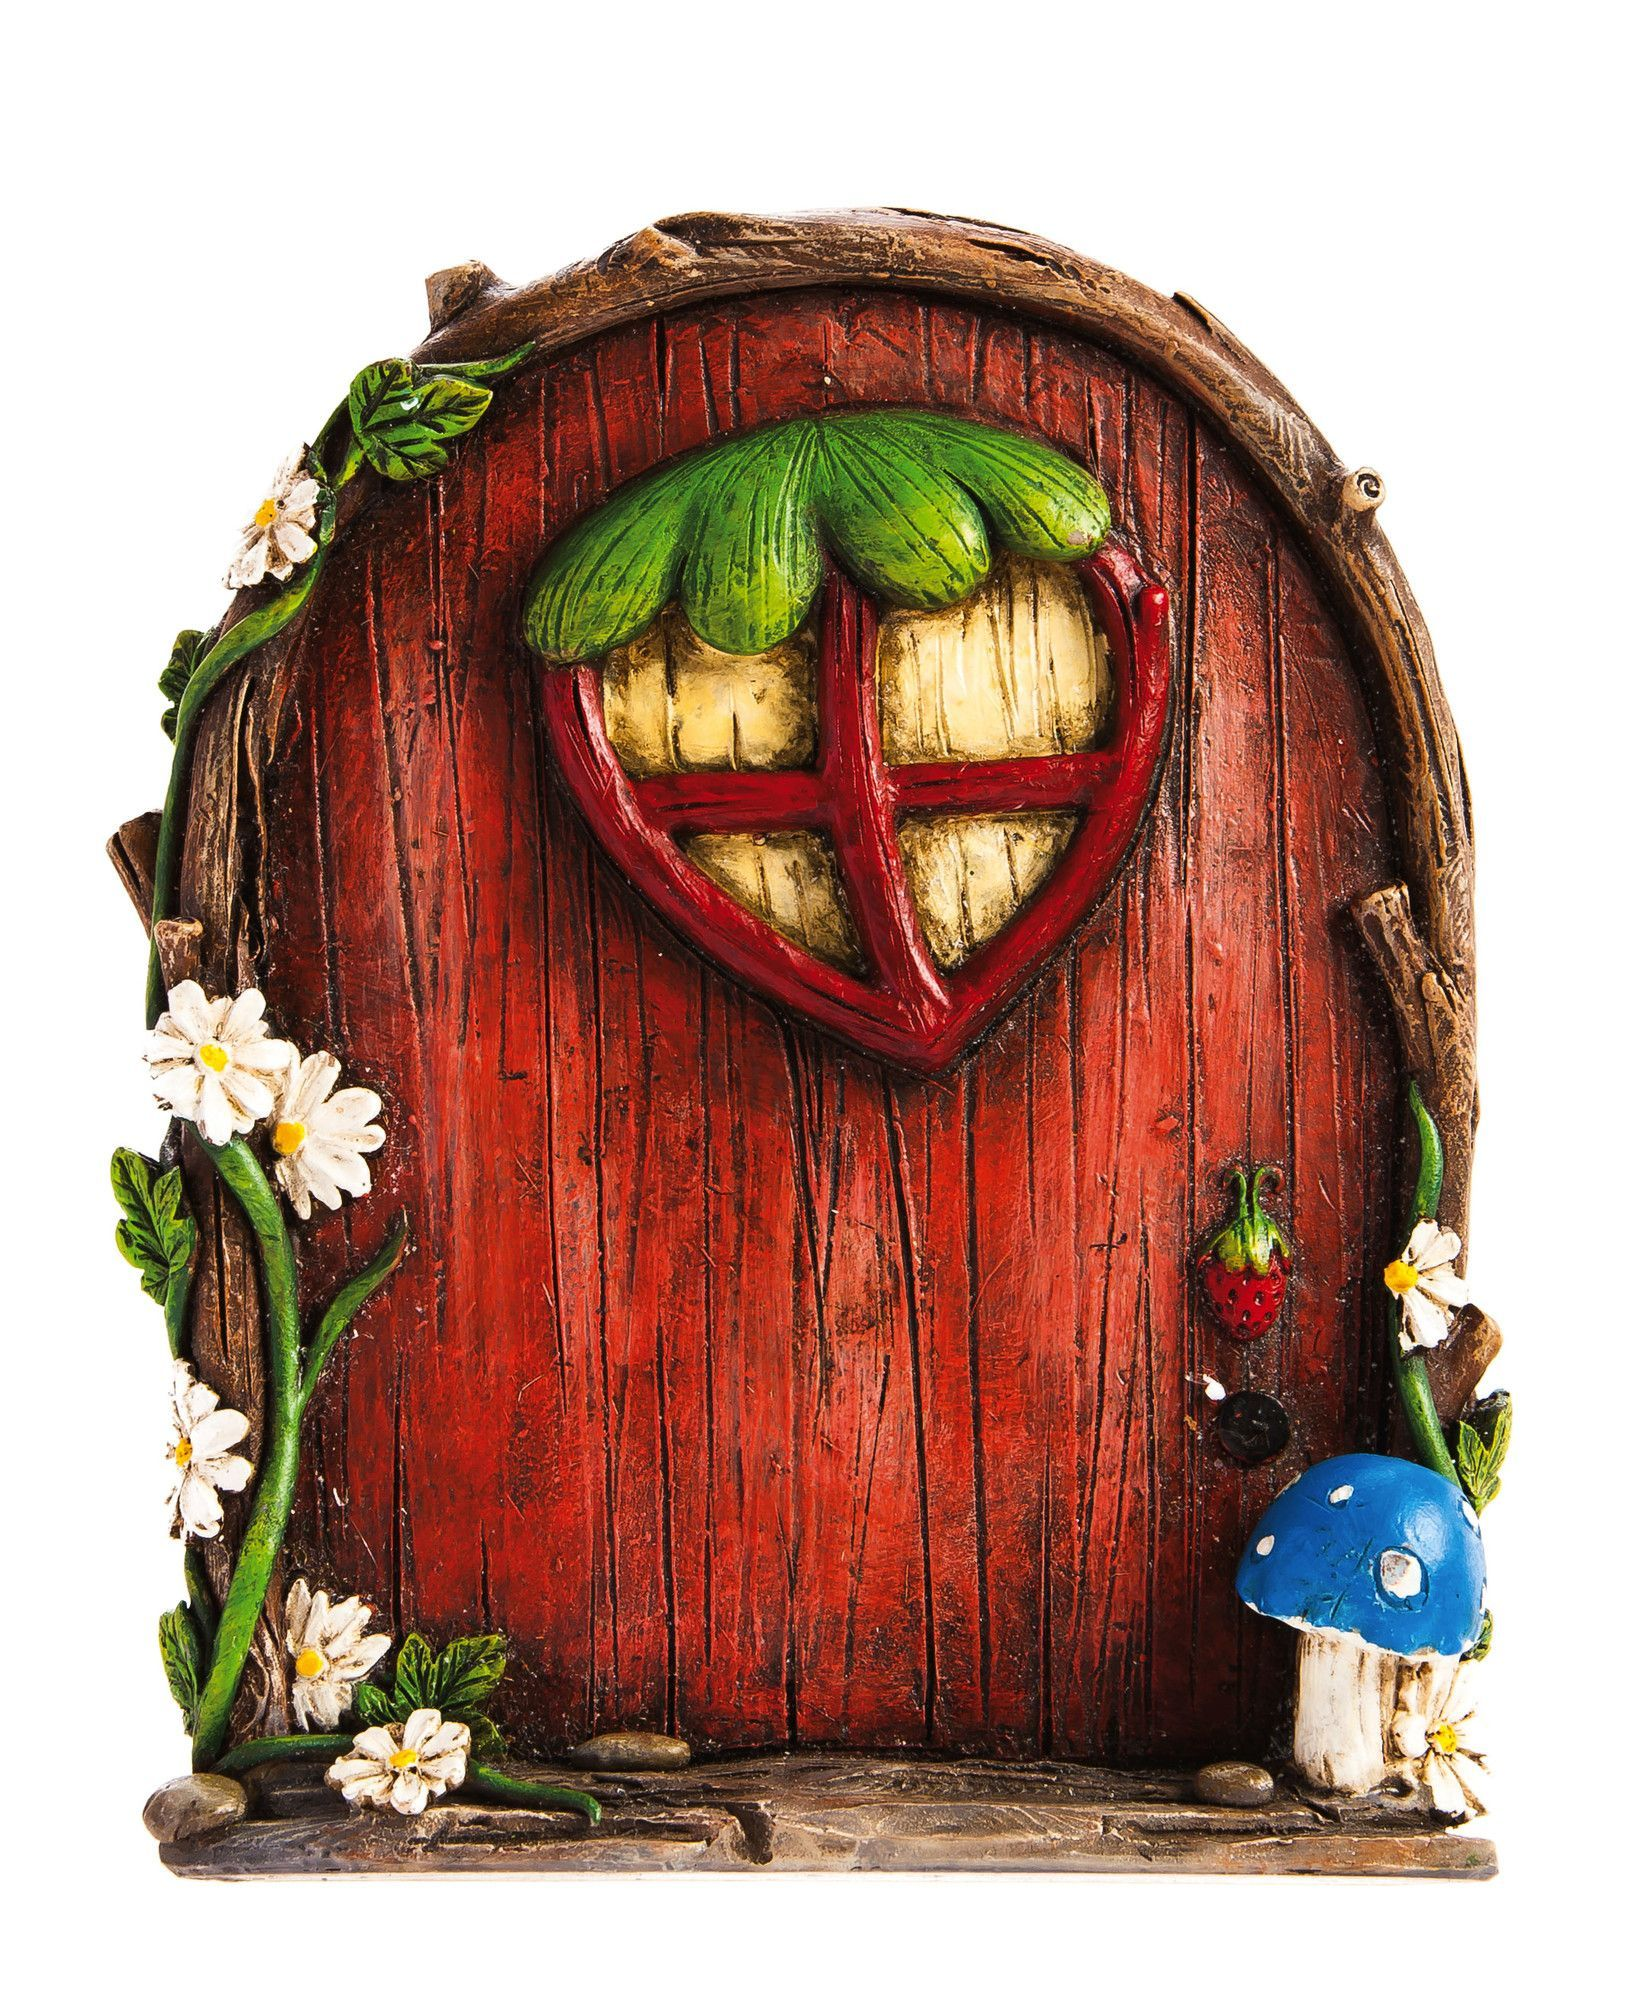 18 Beautiful Fairytale Garden Ideas: Fairy Doors, Miniature